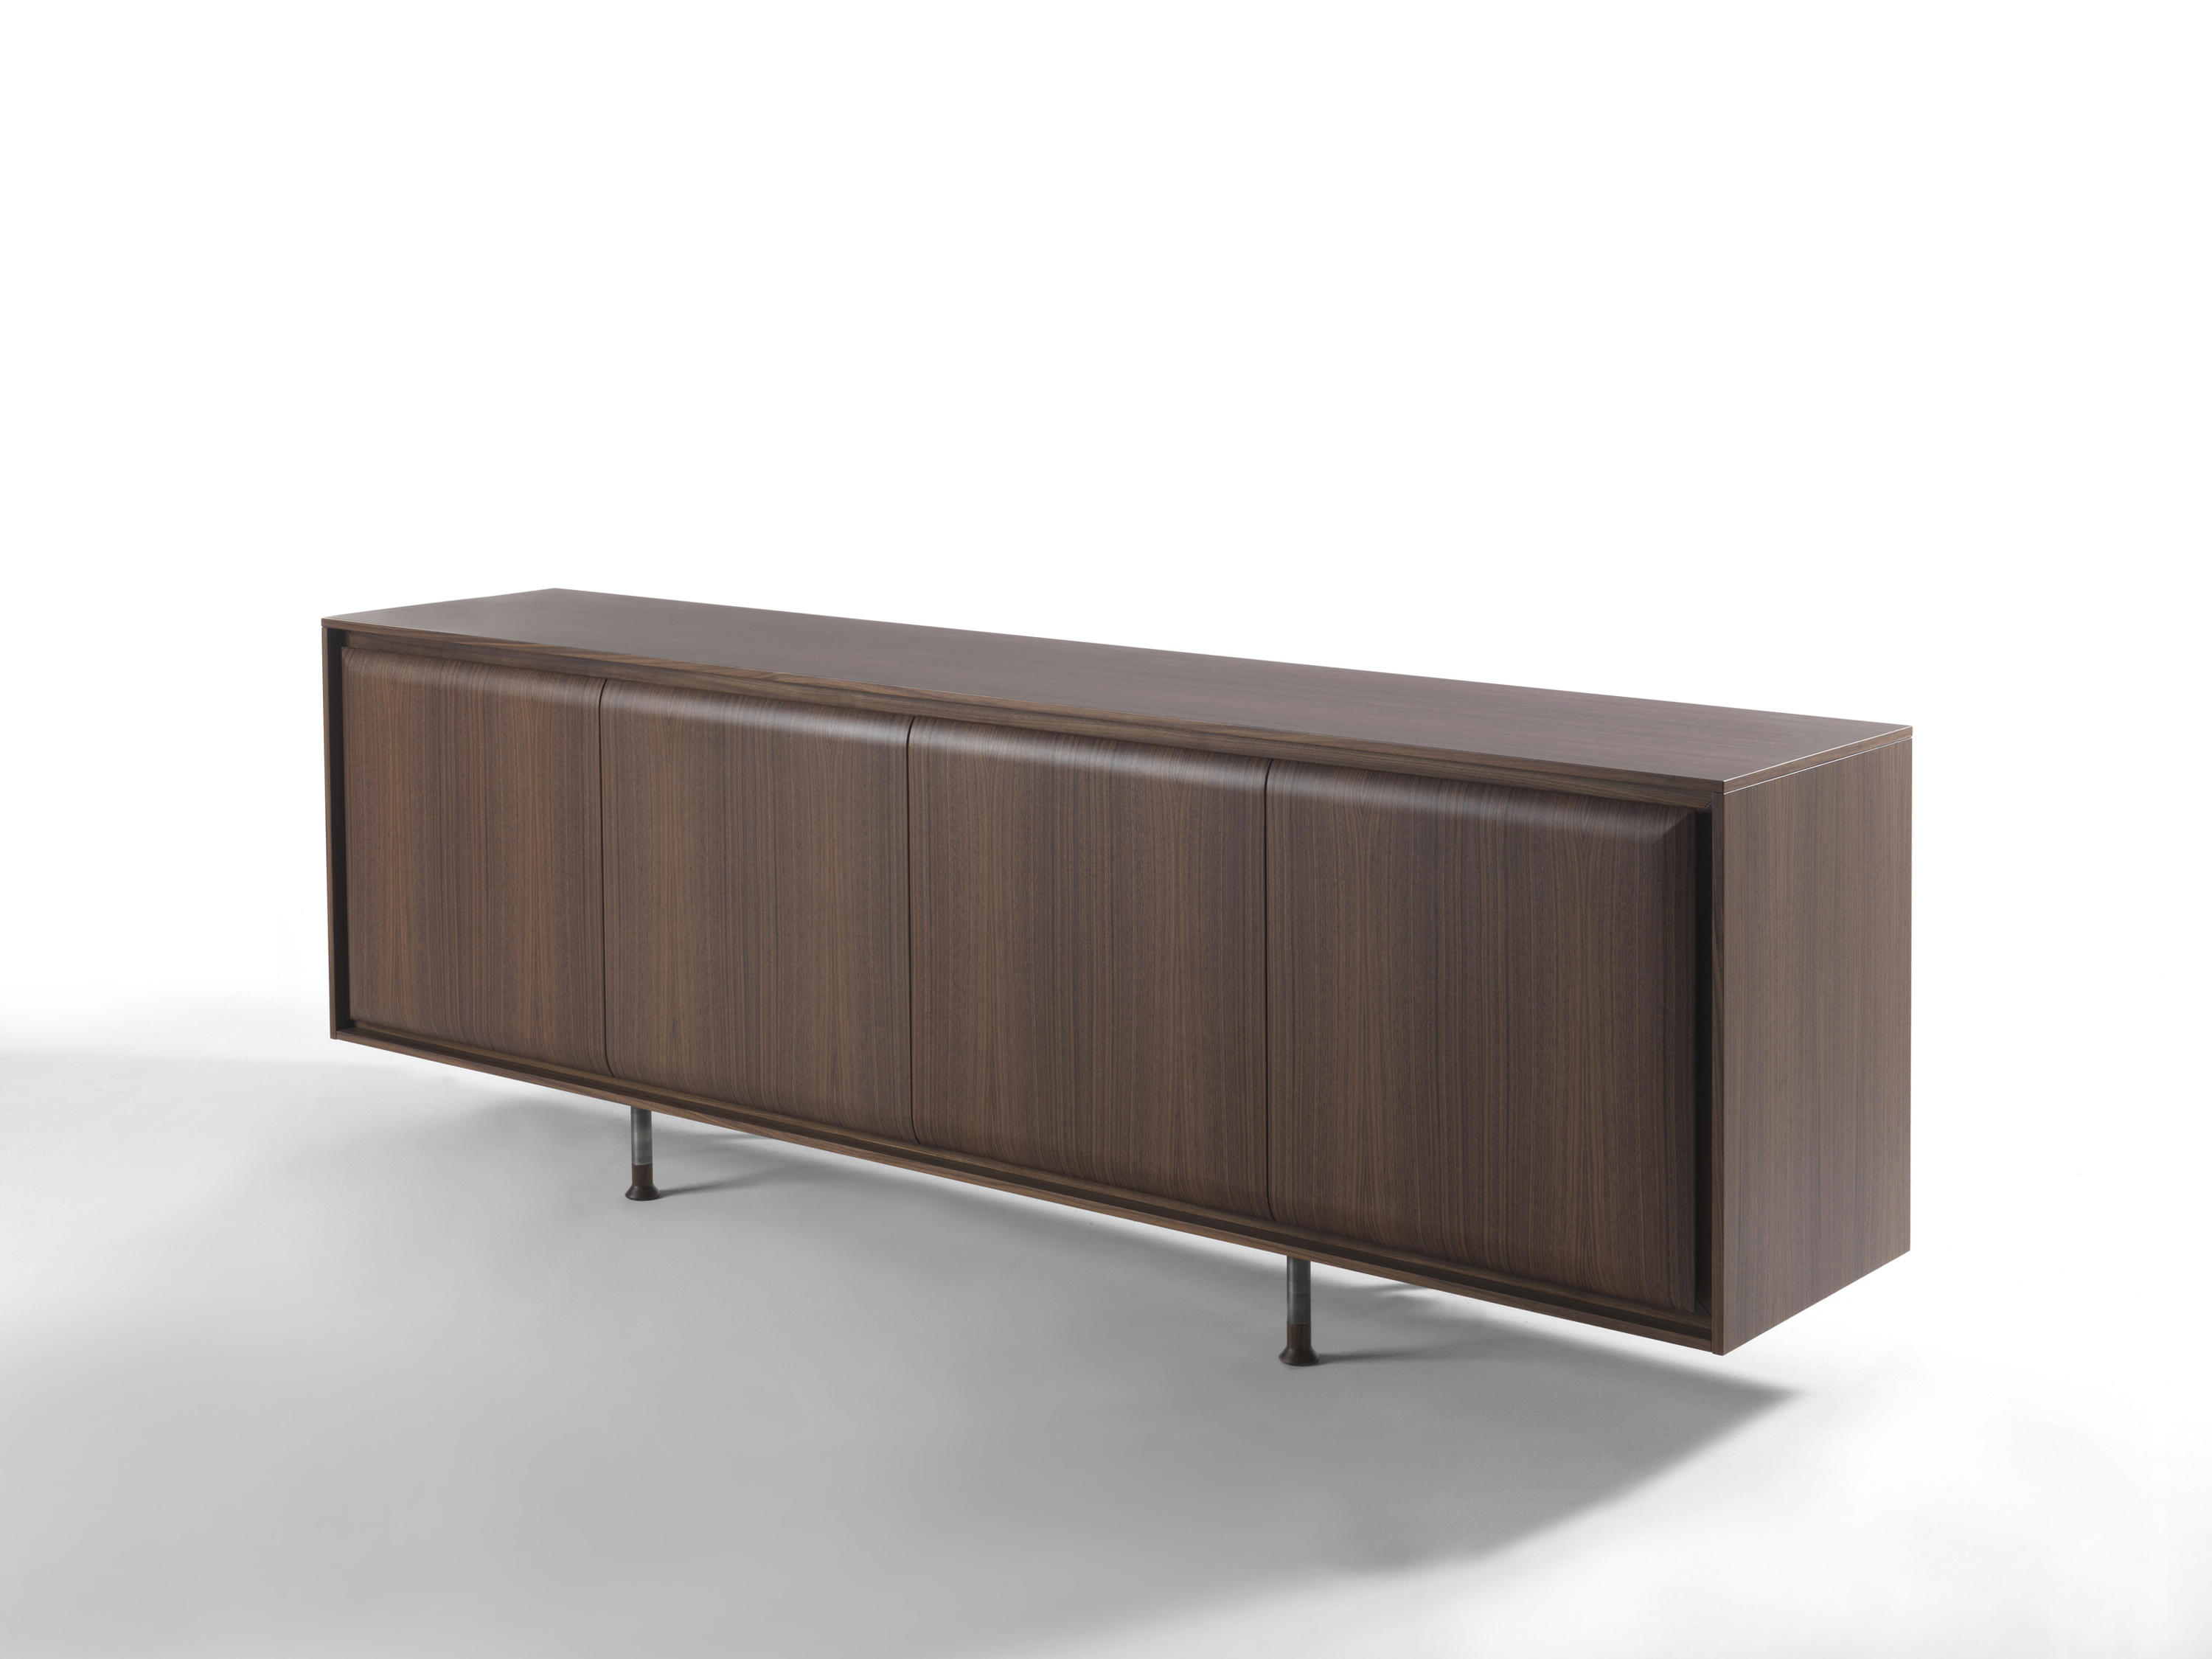 Hamilton Credenza Sideboards From Porada Architonic